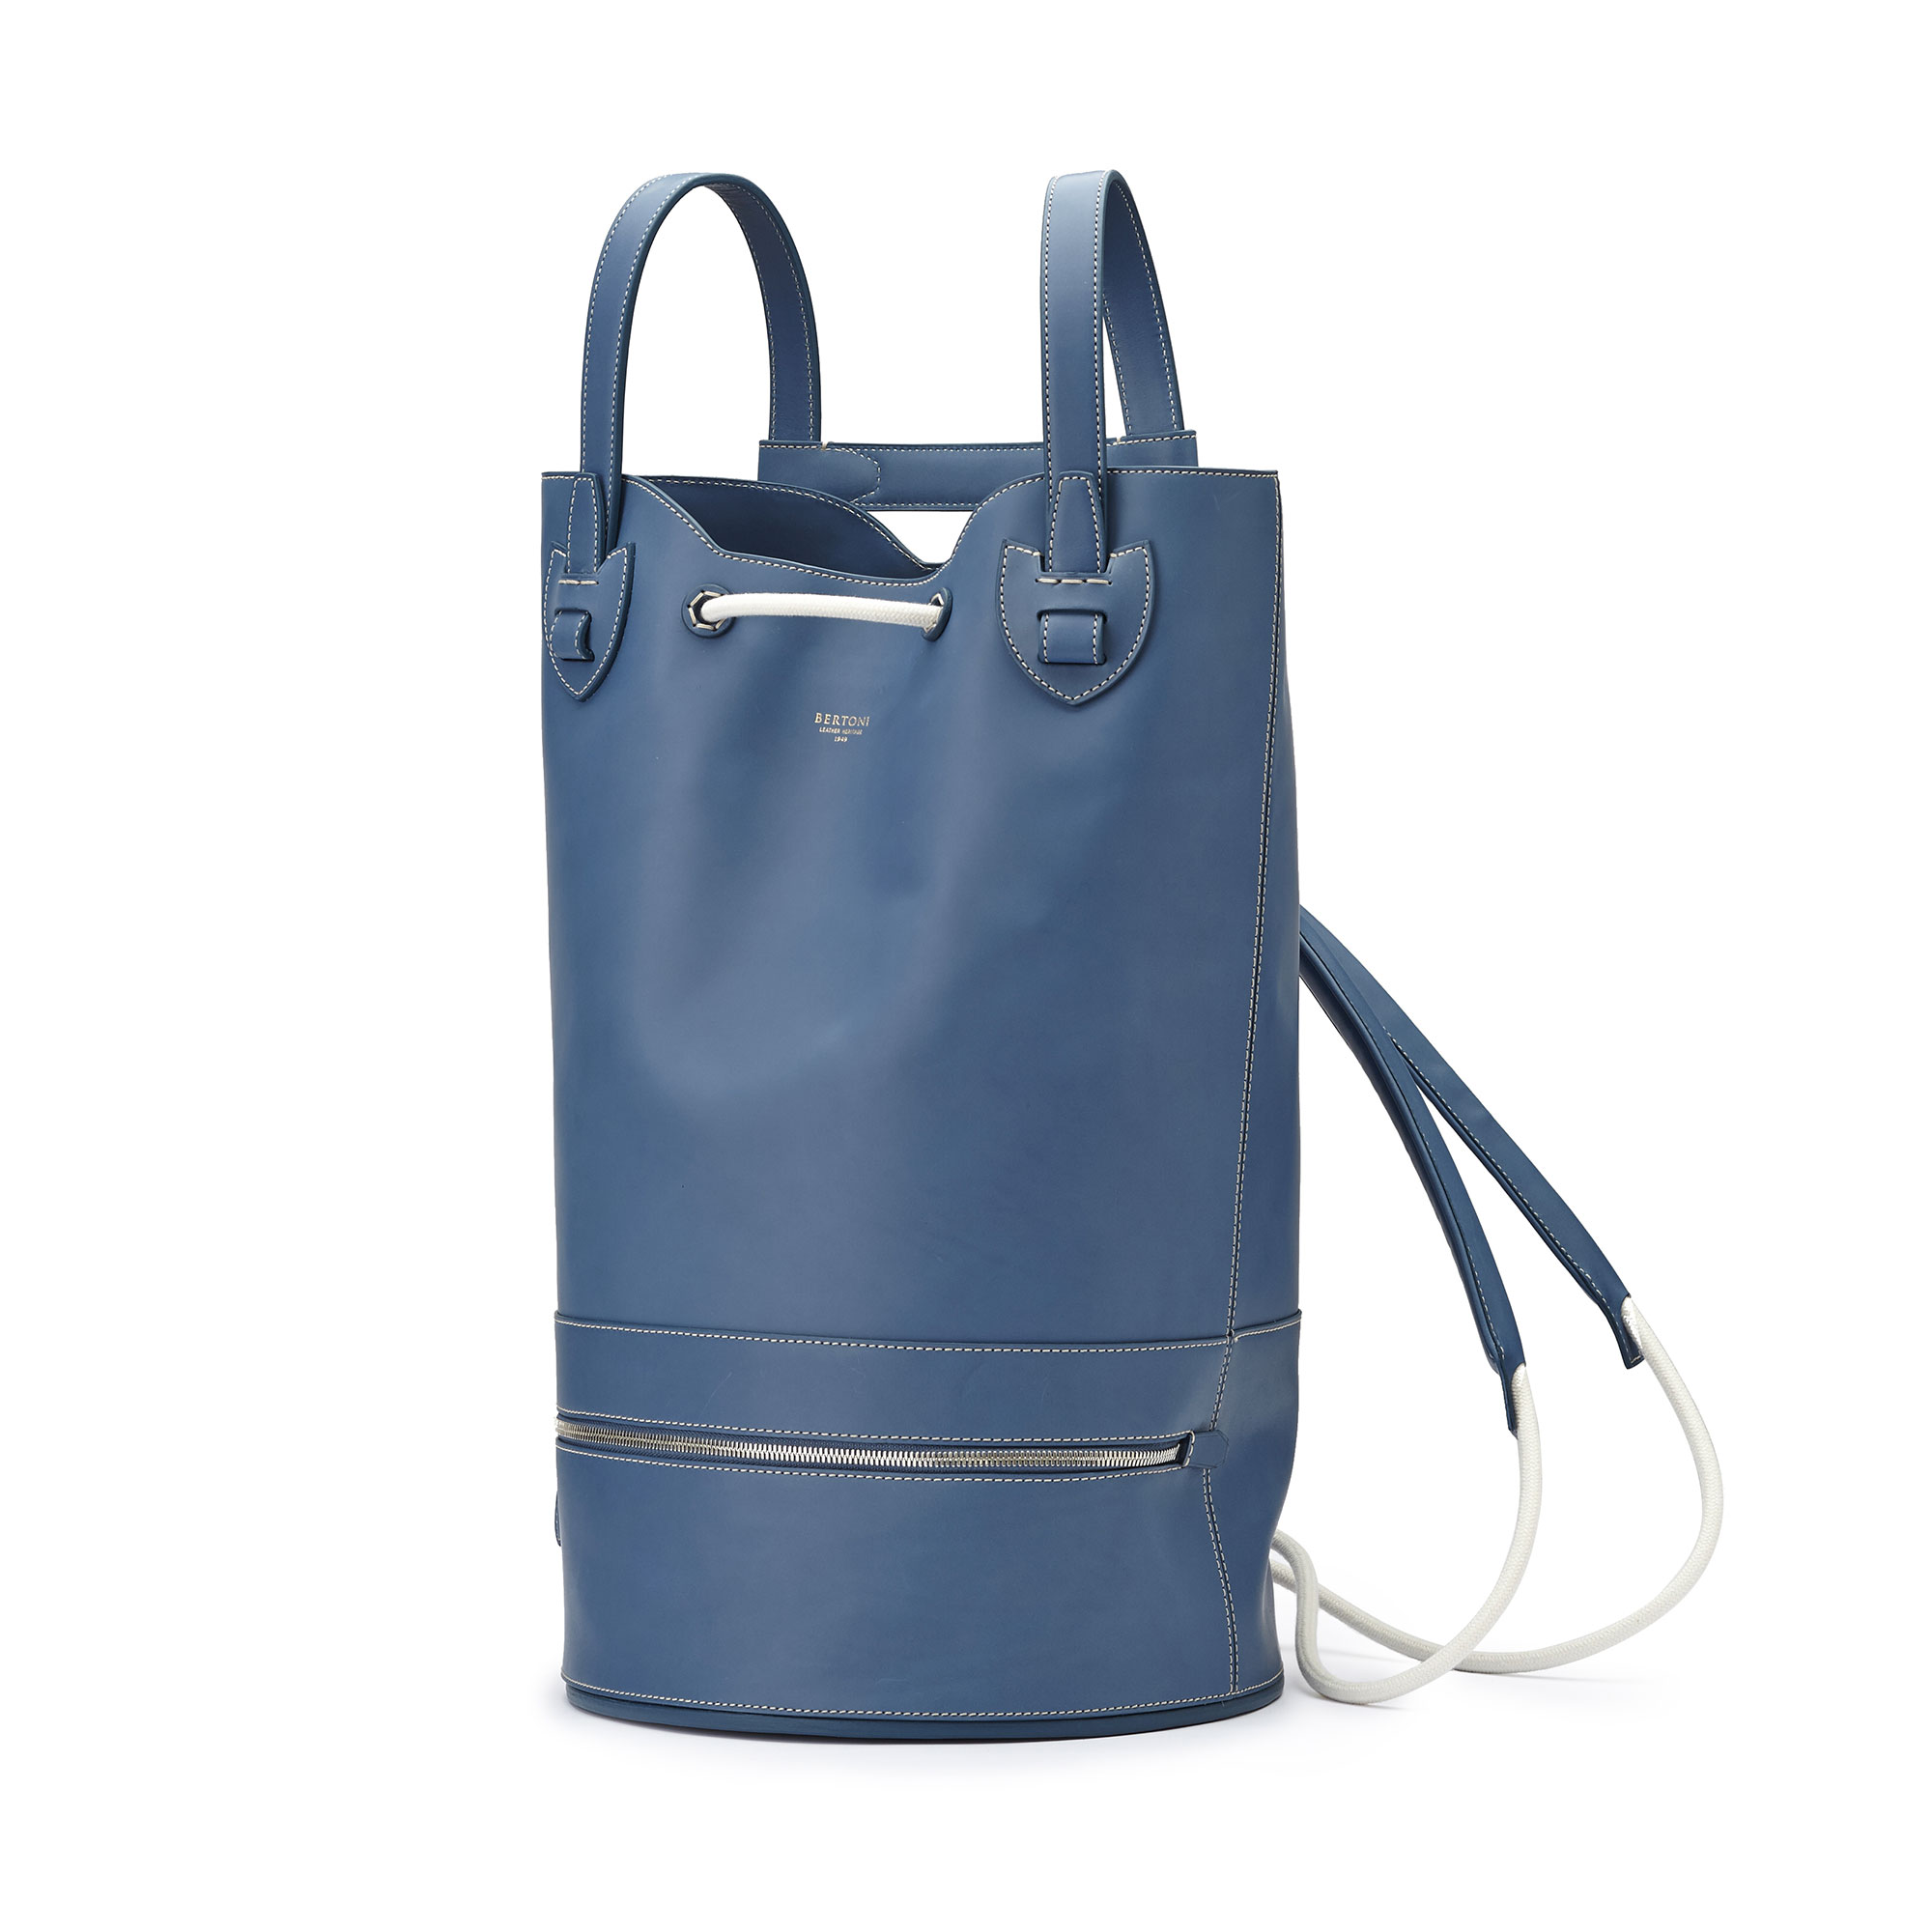 The blue french calf Marine Sac by Bertoni 1949 02